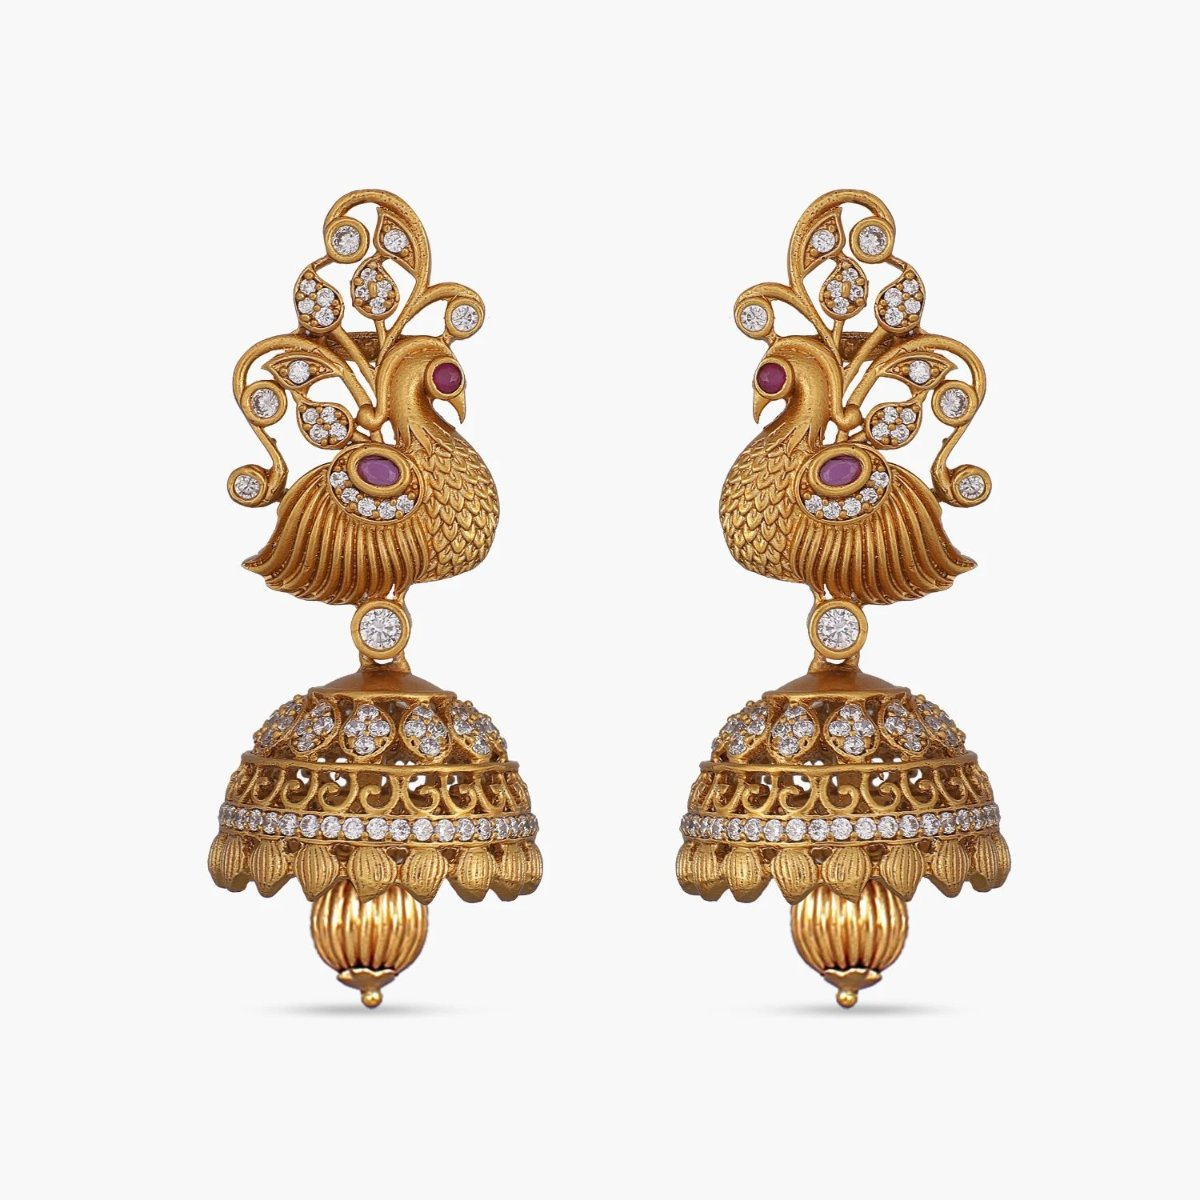 Malavika Antique Jhumka Earrings